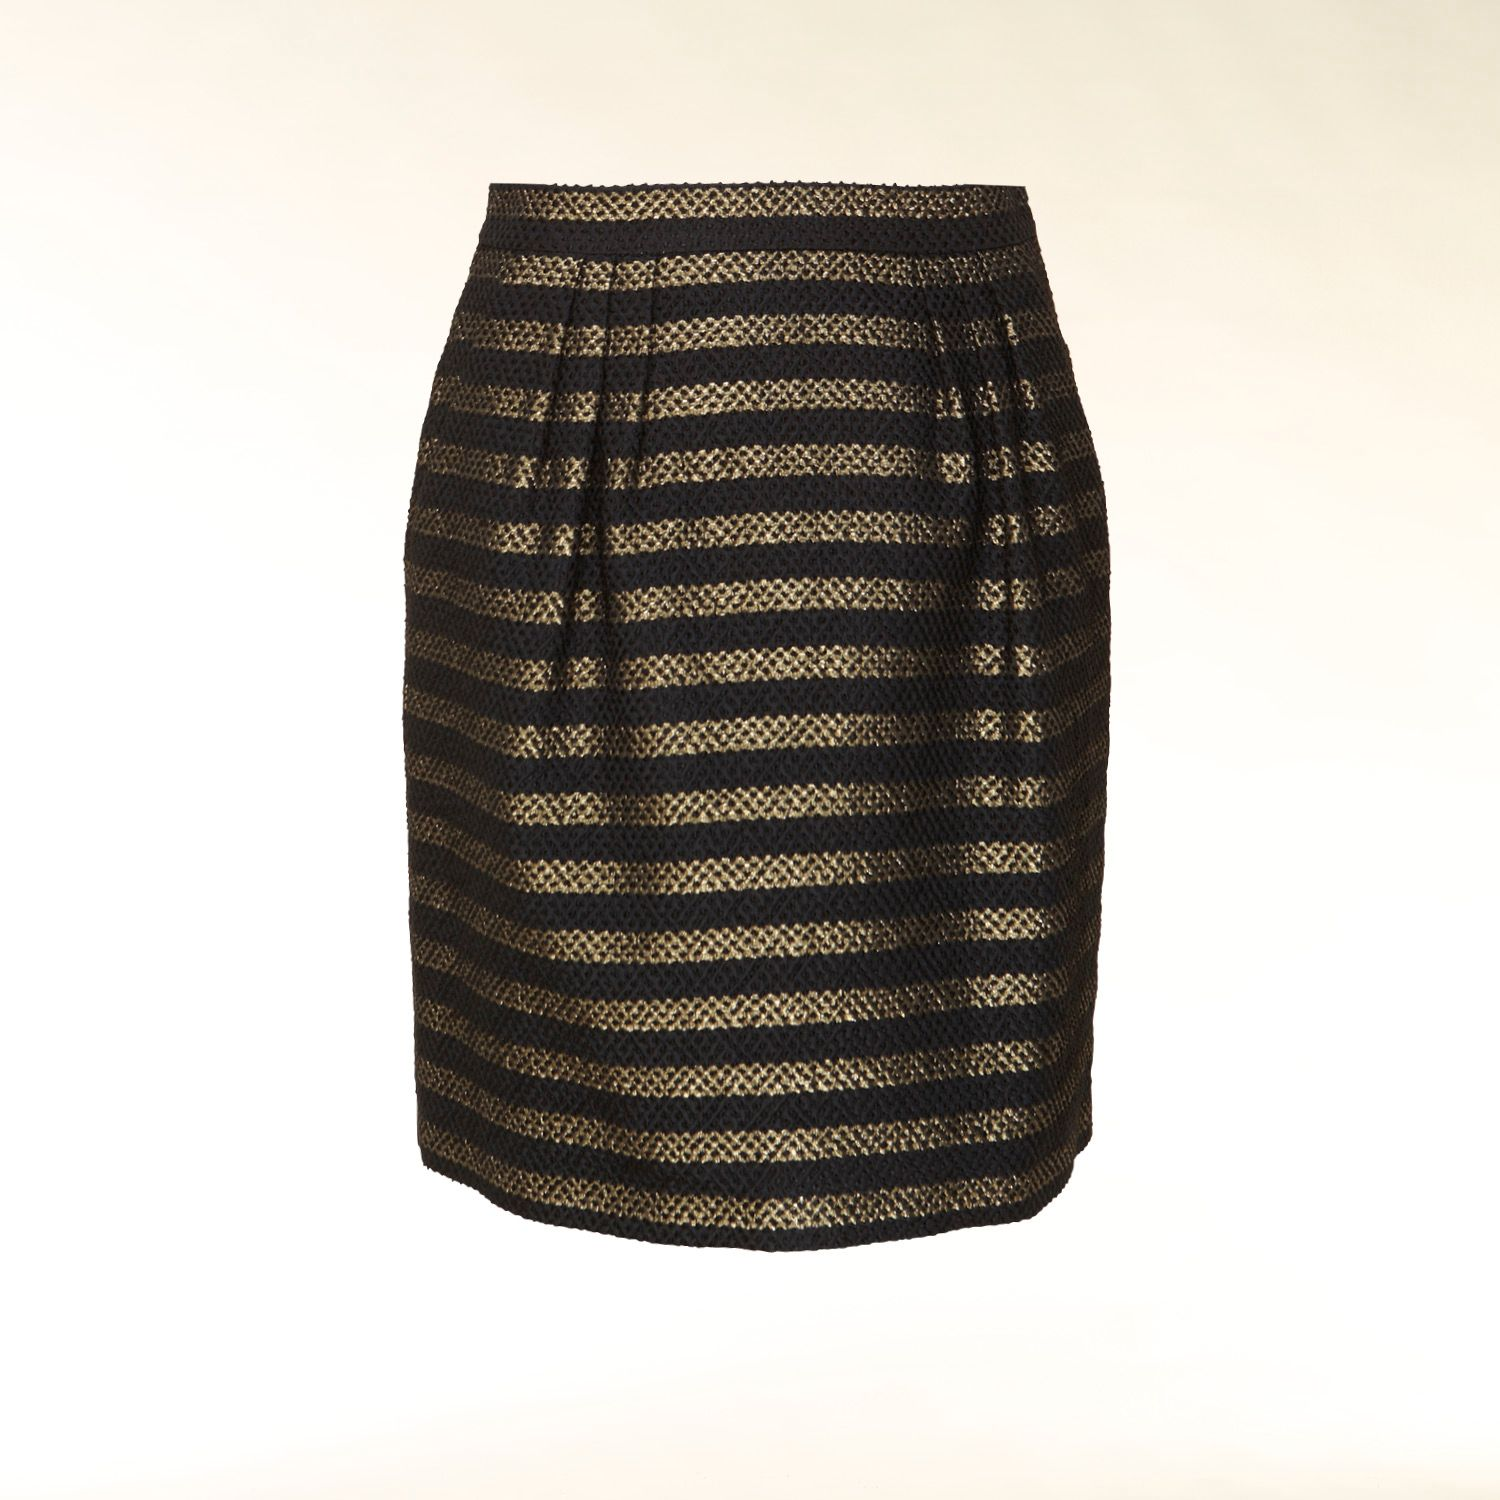 Metallic striped pencil skirt